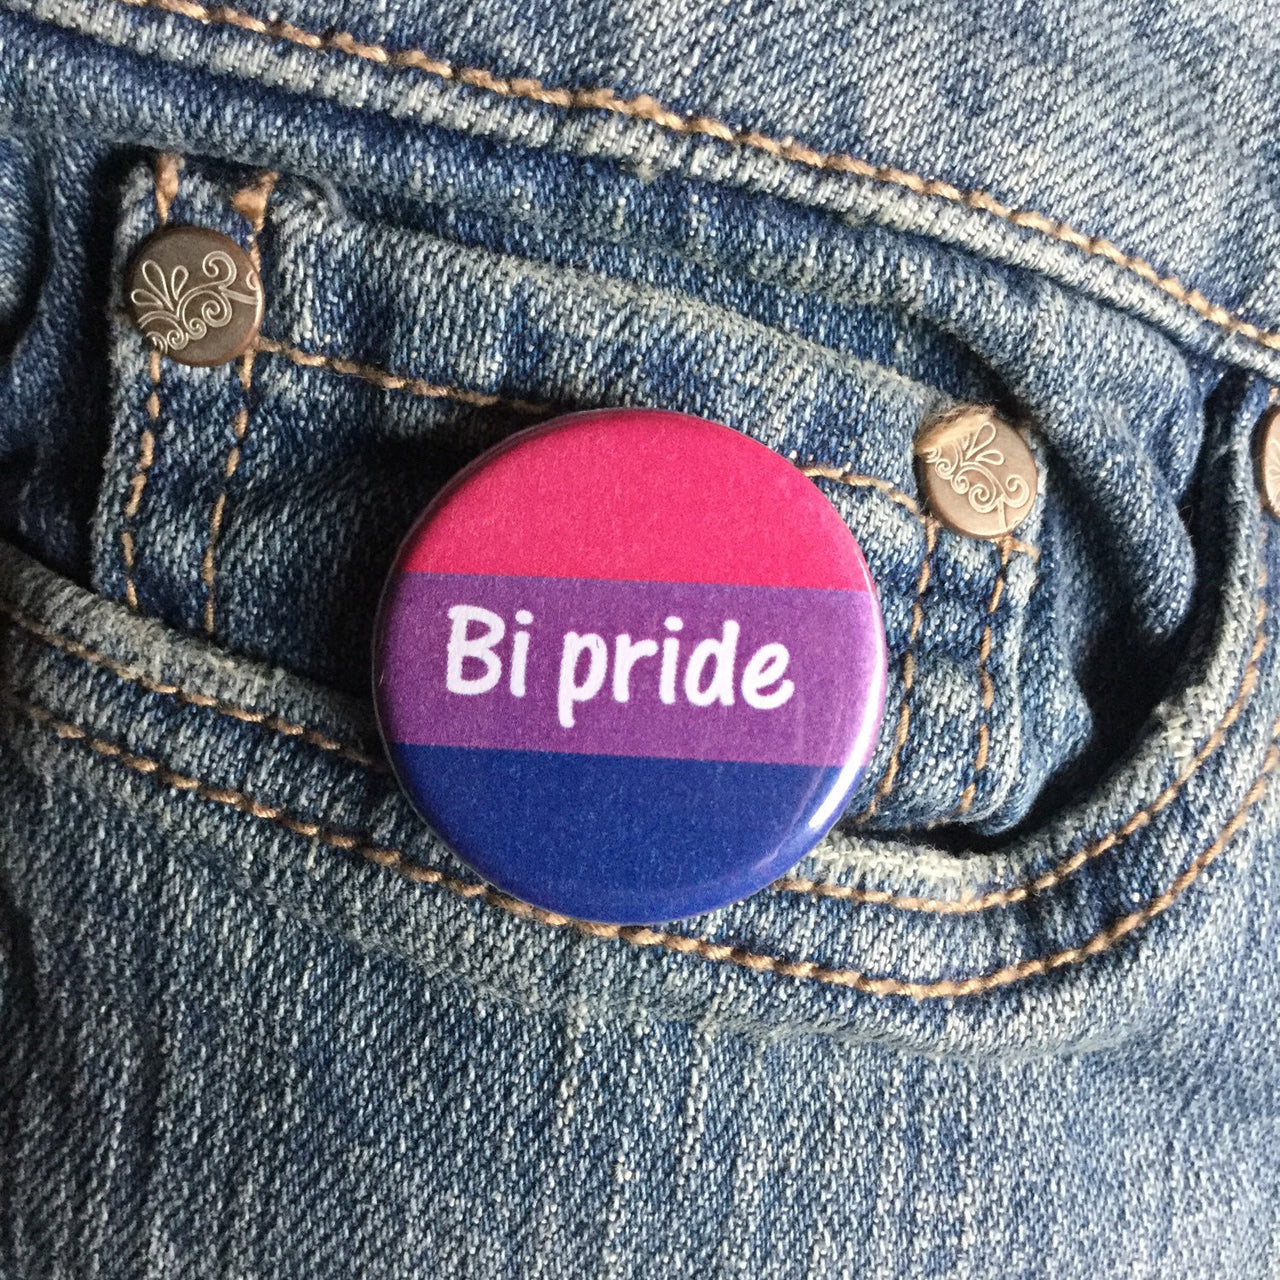 Bi Pride button